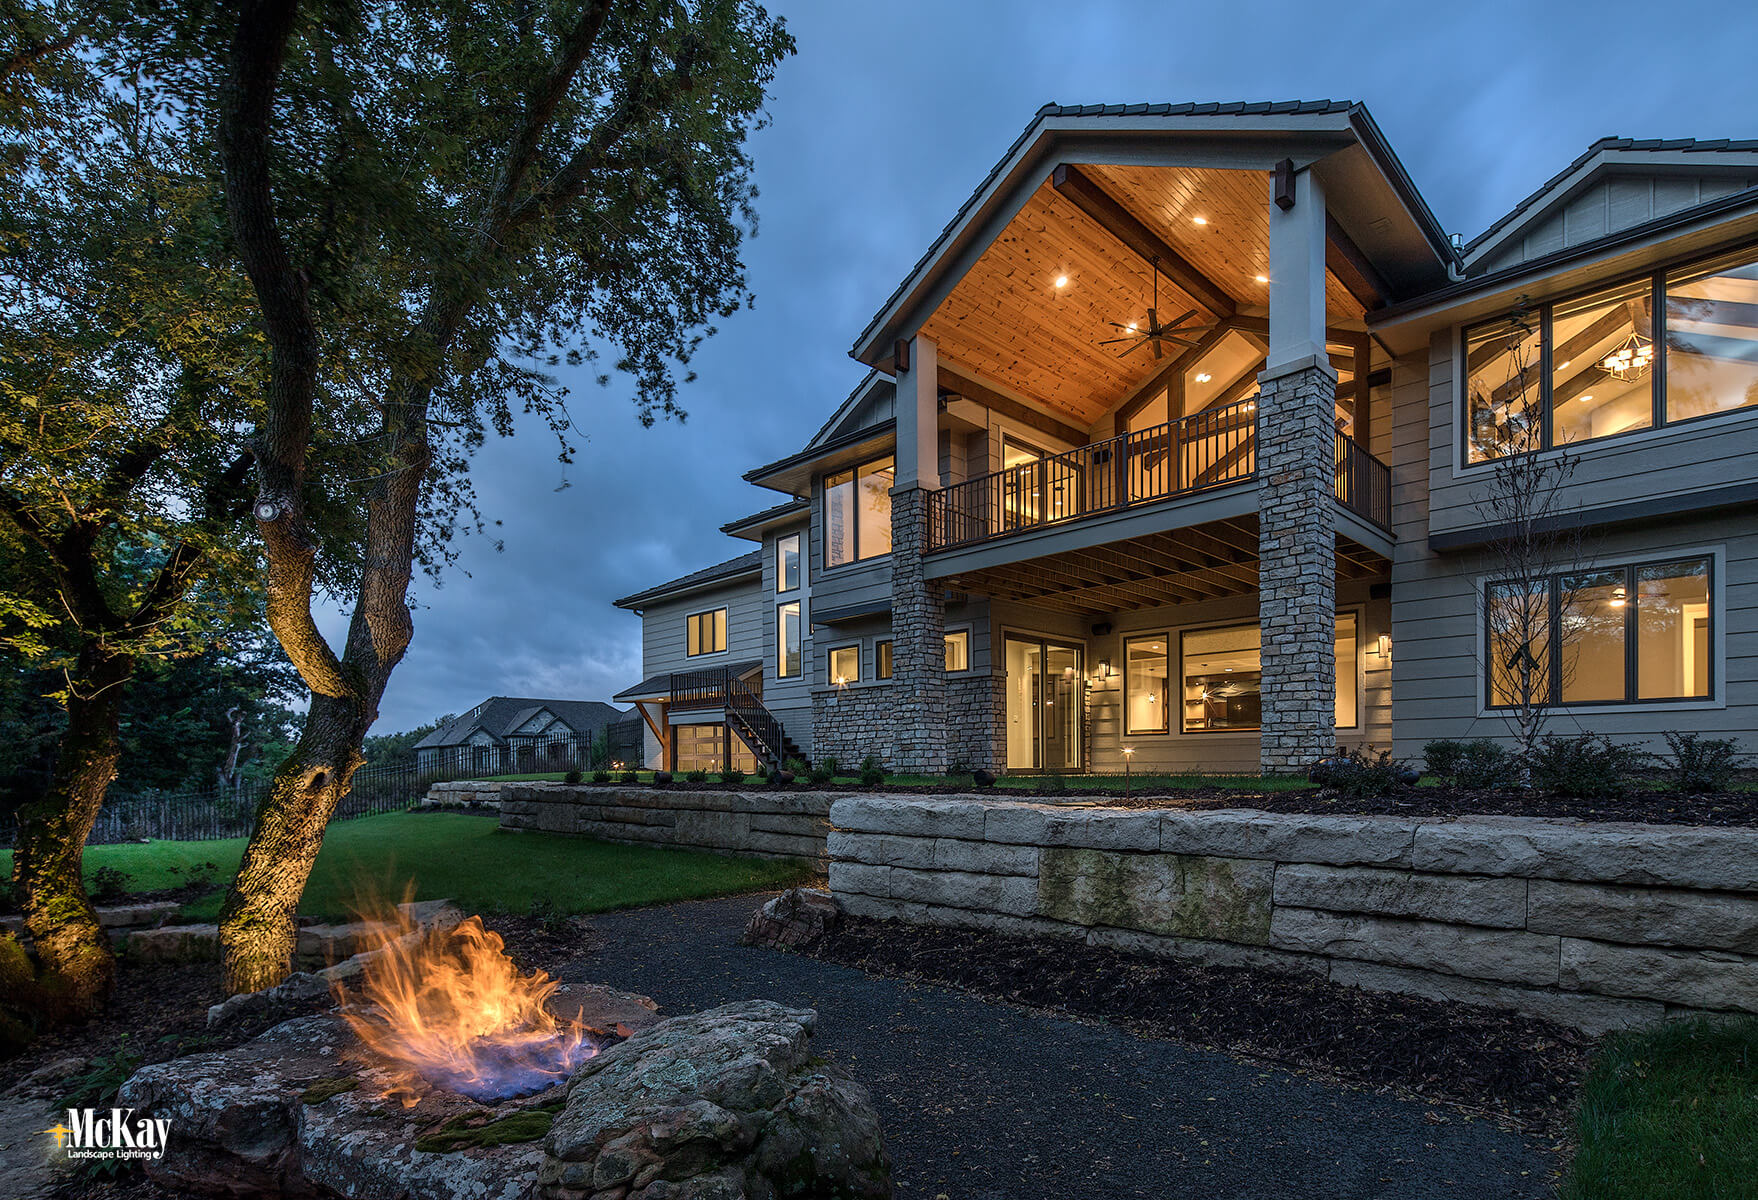 Backyard Outdoor Lighting: The tree lighting creates ambient light to help with visibility when the fire feature is off. It also provides a nice backdrop when the homeowners are looking out from the patio or deck. Click to learn more...   McKay Landscape Lighting - Omaha Nebraska